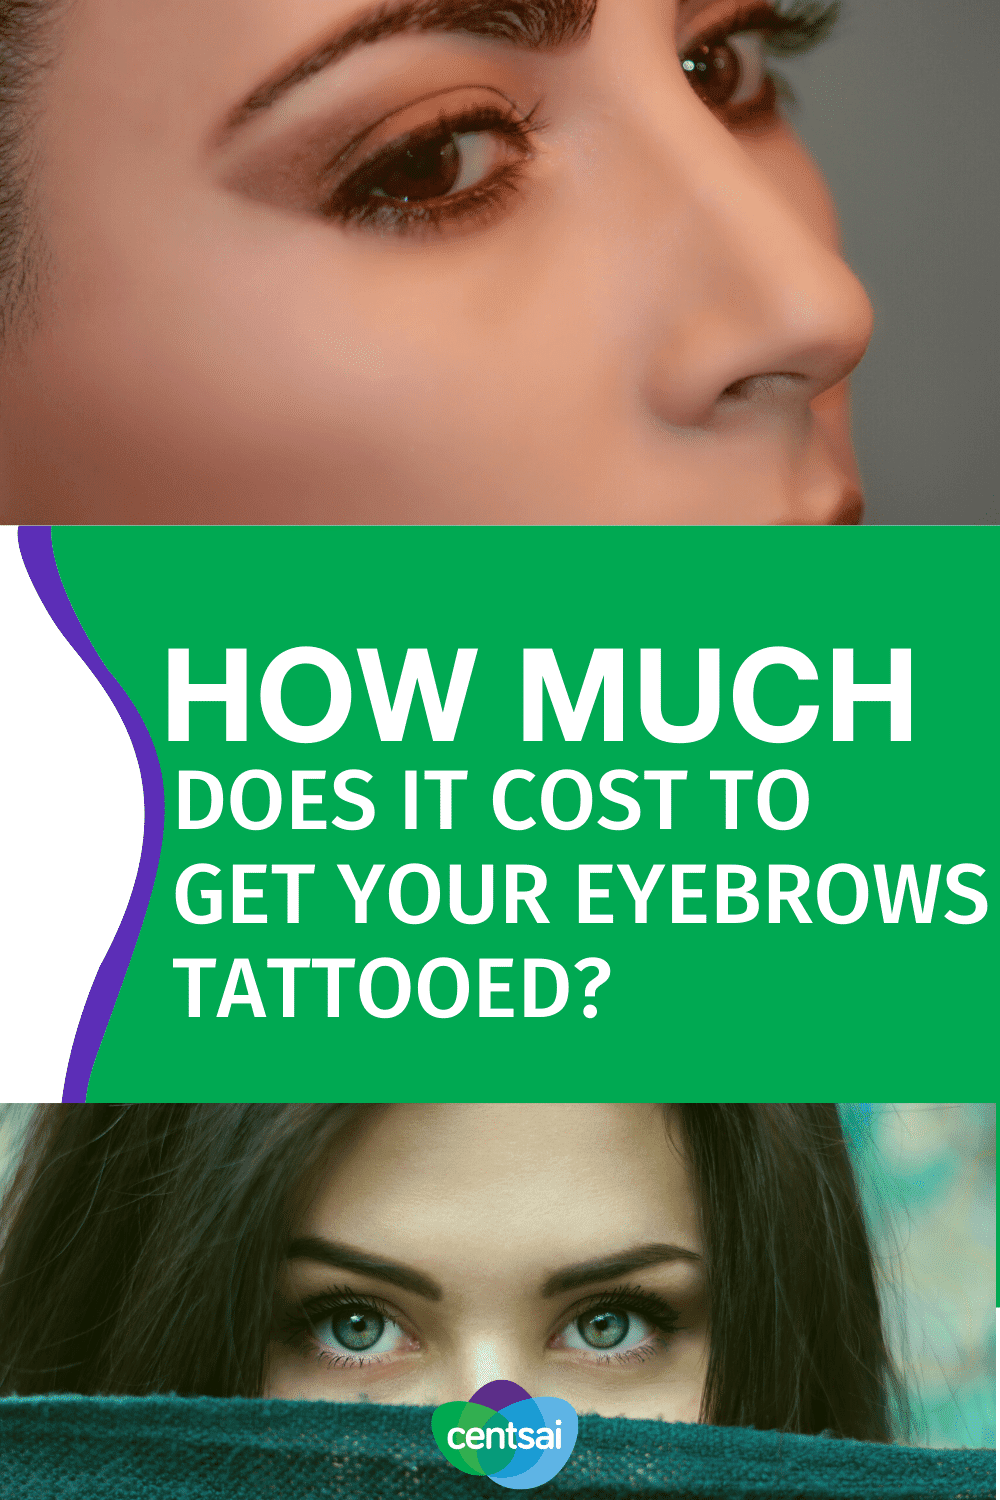 How Much Does It Cost to Get Your Eyebrows Tattooed